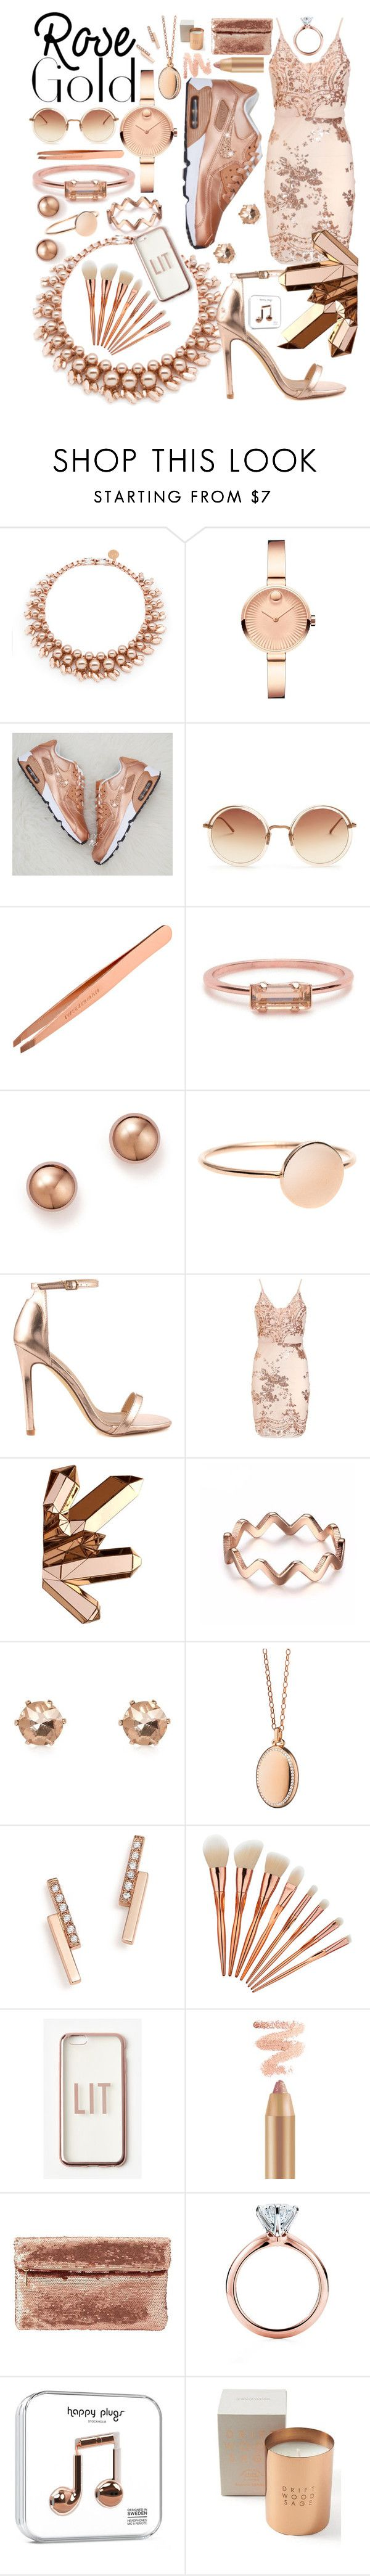 """""""Untitled #92"""" by megan-hopkins-2 ❤ liked on Polyvore featuring Ellen Conde, Movado, Linda Farrow, Bing Bang, Bloomingdale's, Liliana, River Island, Monica Rich Kosann, ZoÃ« Chicco and Missguided"""